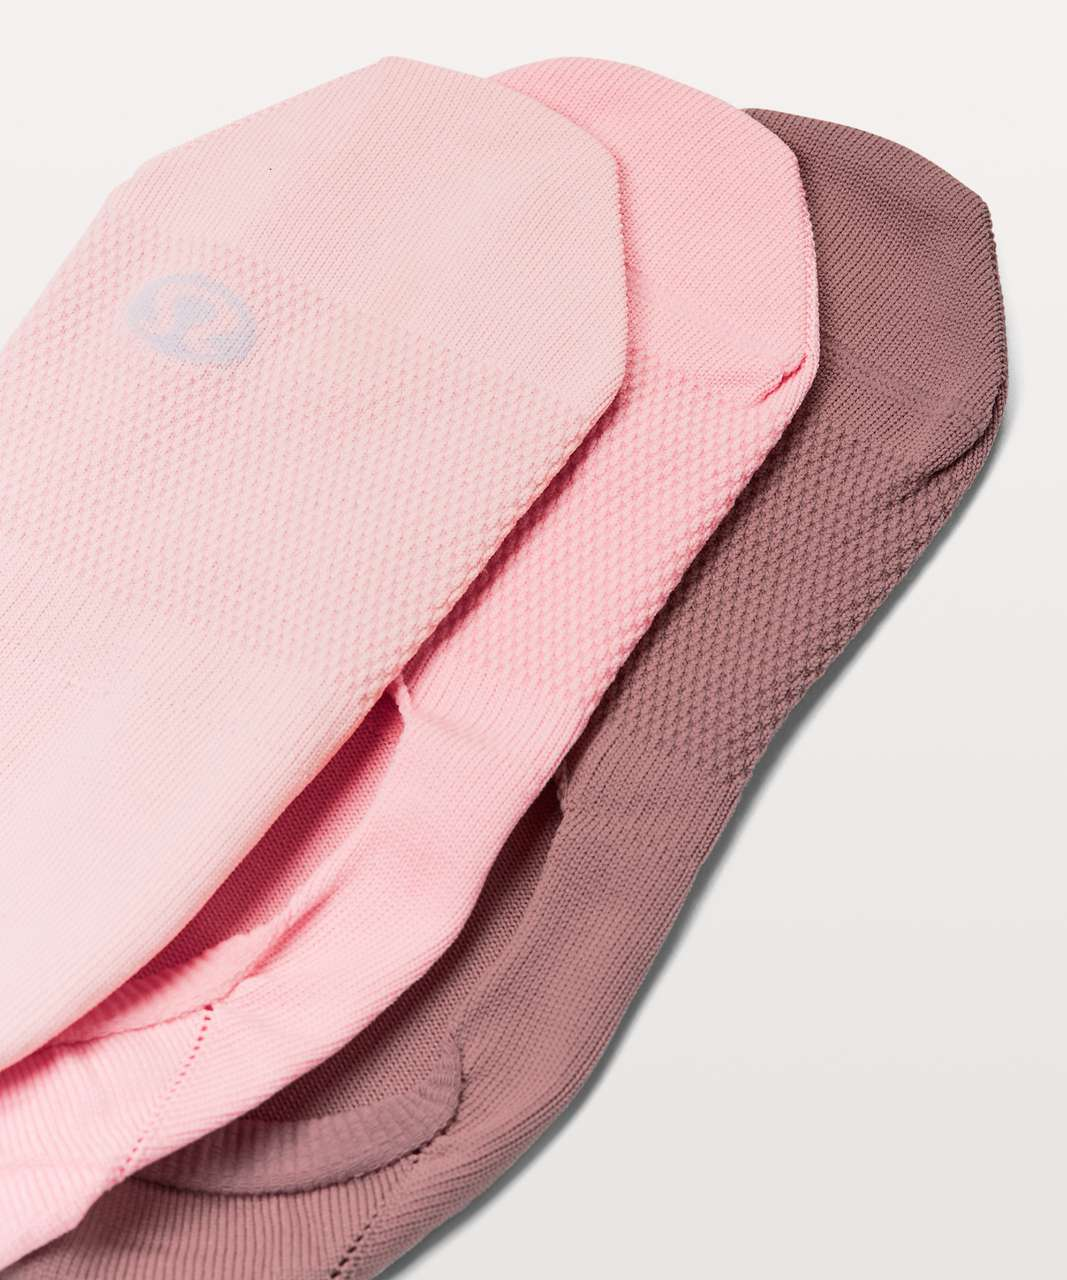 Lululemon Secret Sock *3-Pack - Quicksand / Cupcake Pink / Dusty Pink